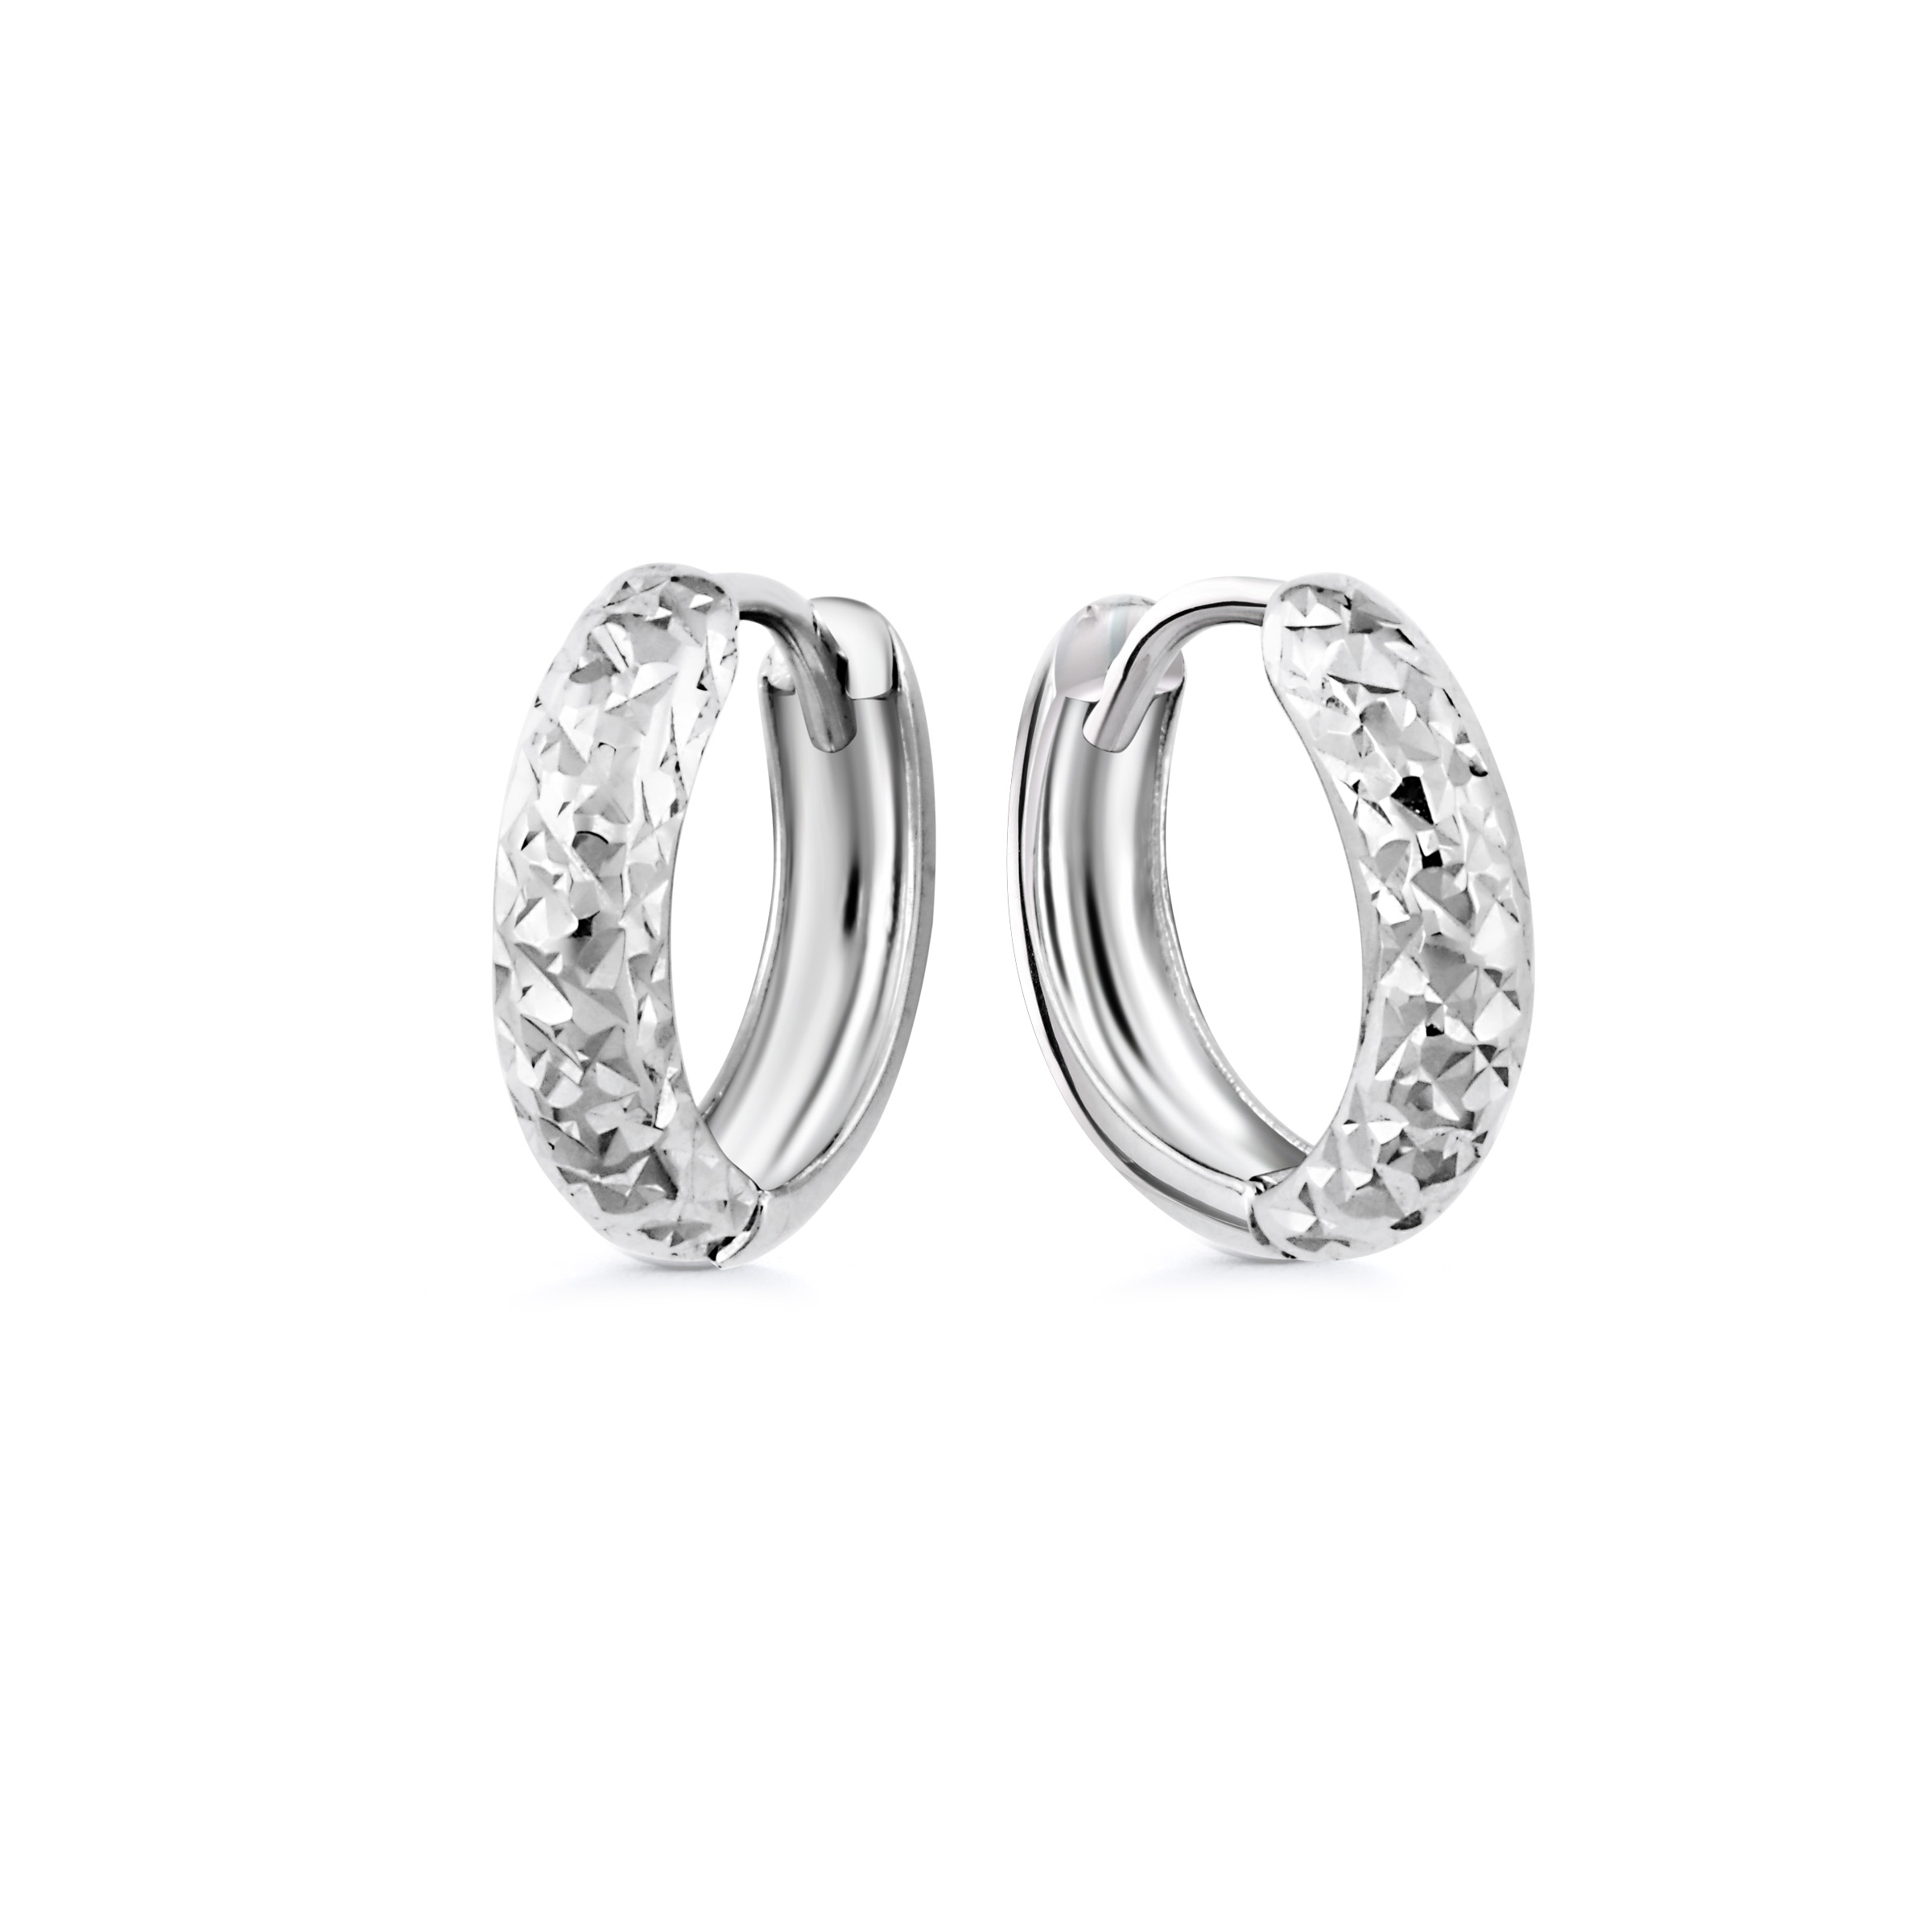 Hoop earrings for children - 10K white Gold